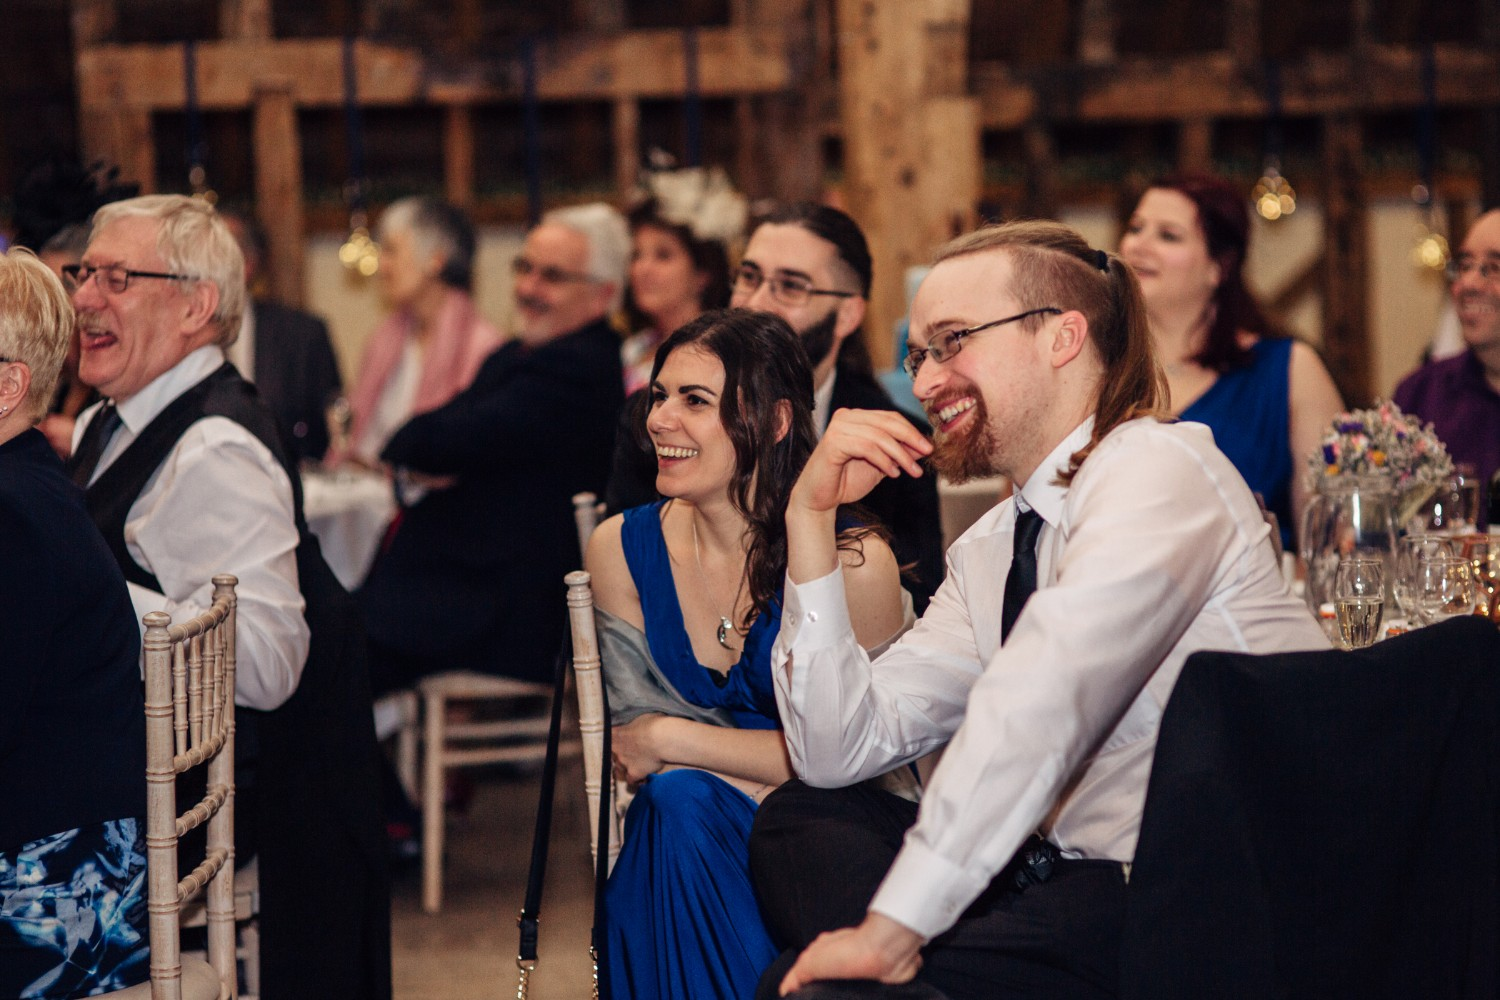 Liz + Dave Tewin Bury Farm Winter Wedding Naomijanephotography496.jpg